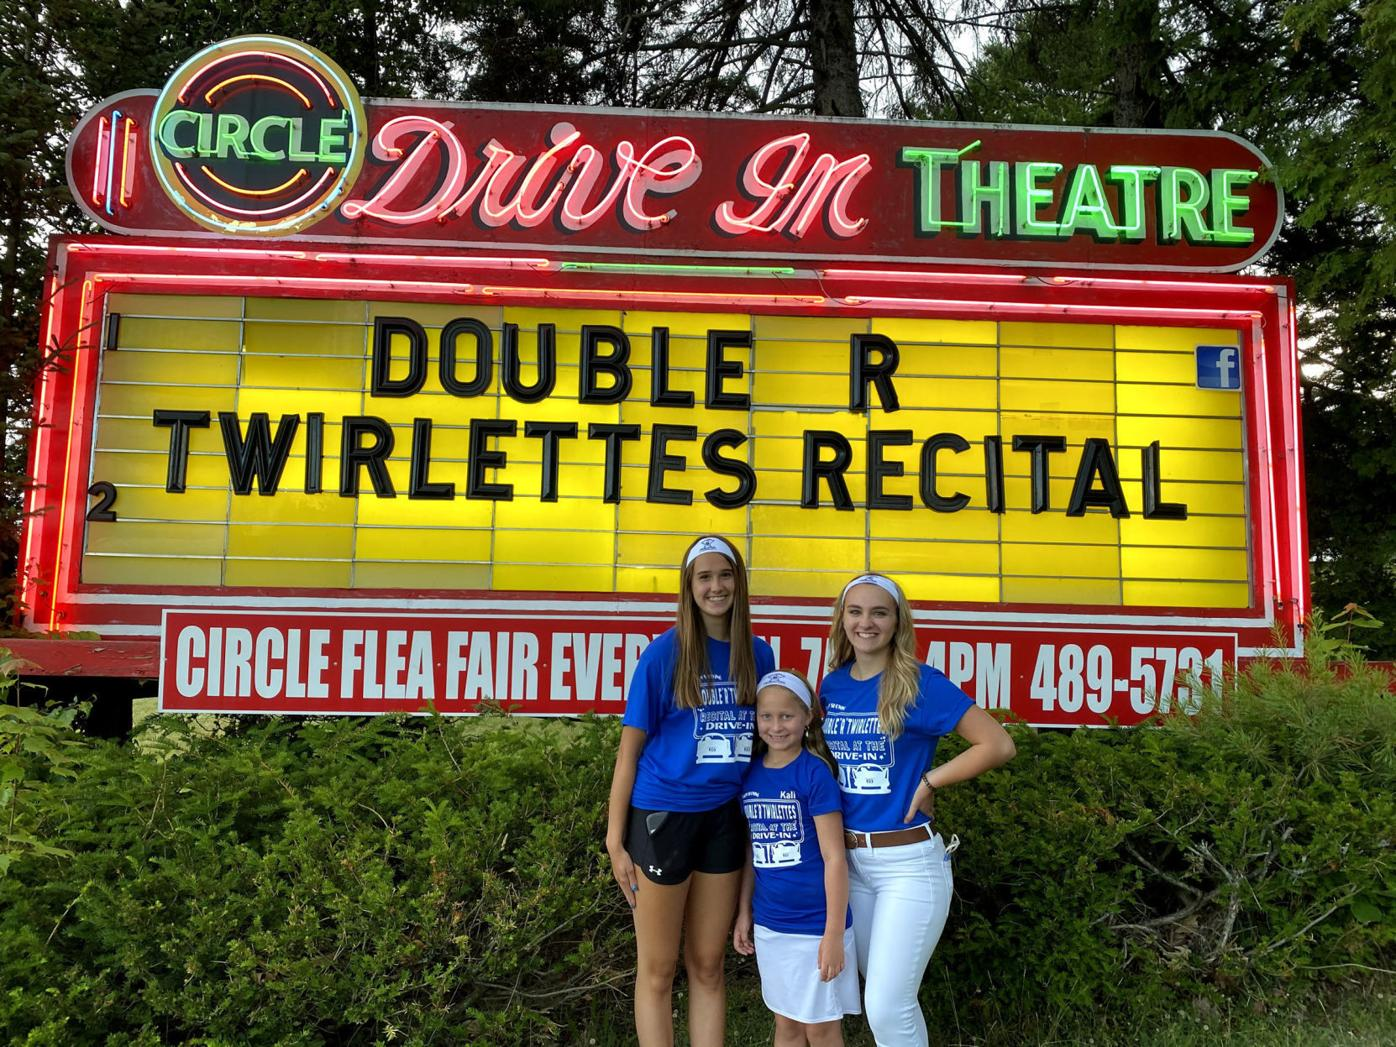 Group members from left Jordan Gioupis, Kali Mercatili, Allie Taffera stand next to the Circle Drive-In's marquee.